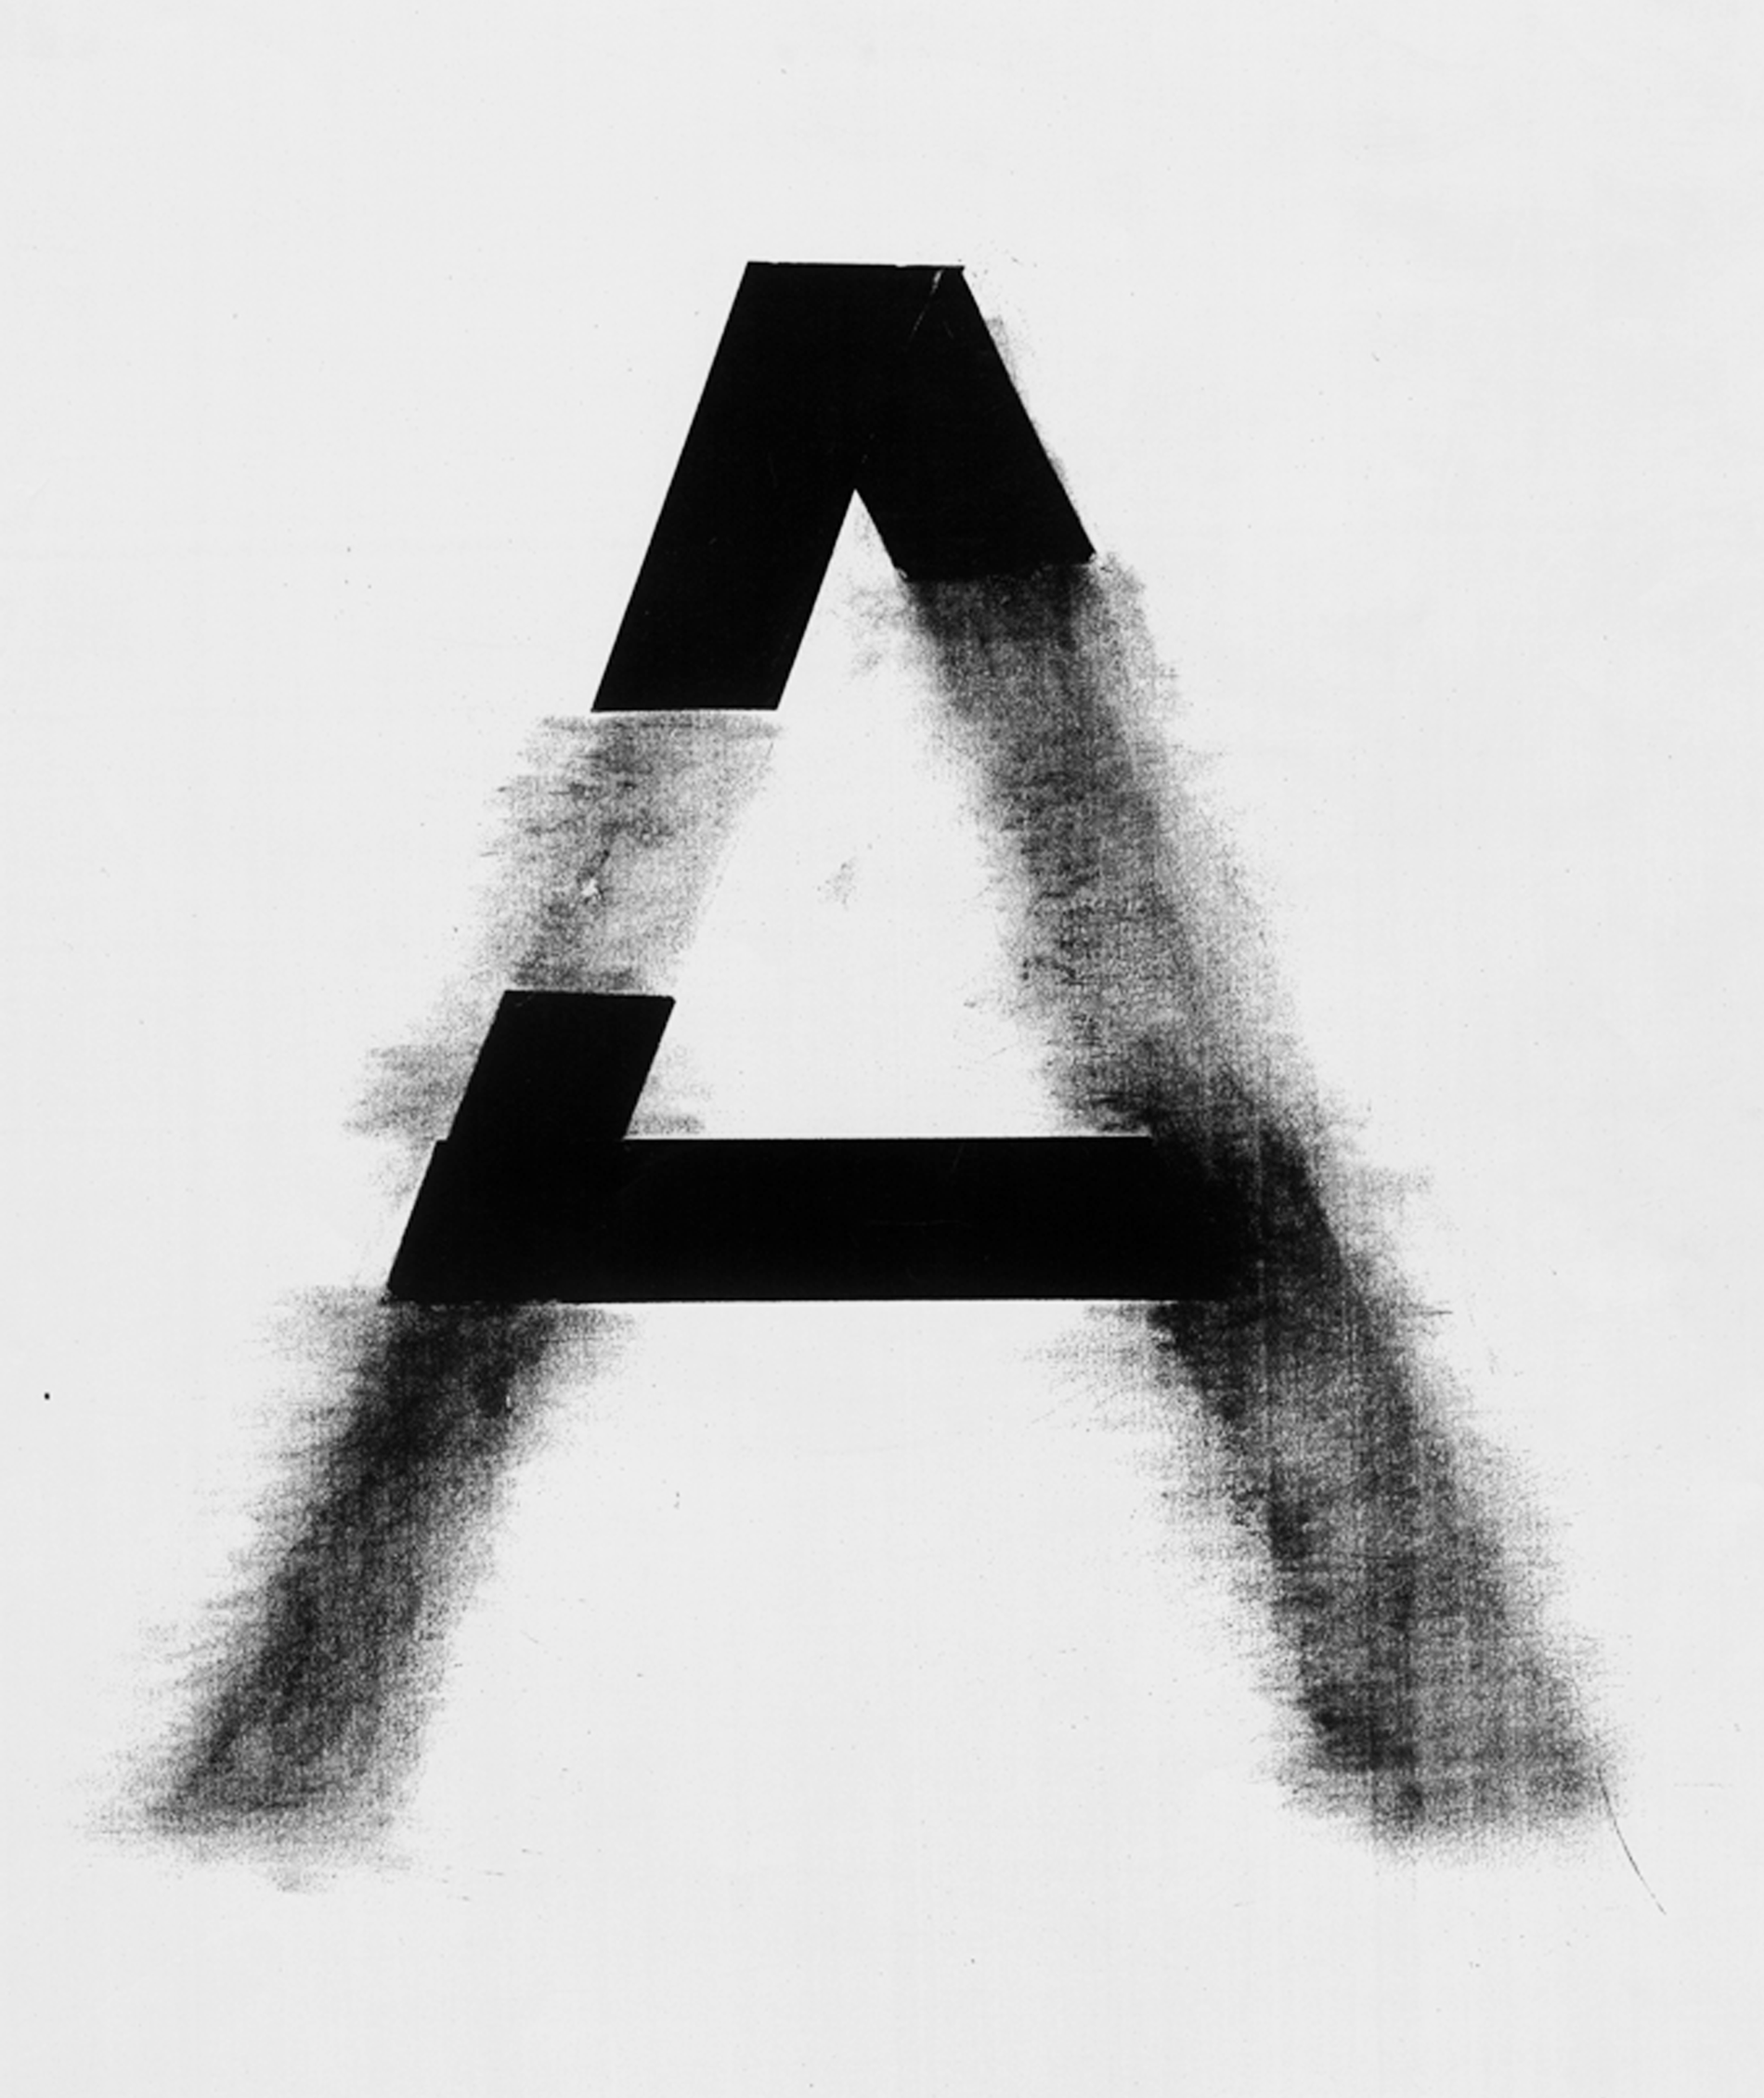 LETTER EXPLORATION, MADE WITH CUTOUT PAPER AND CHARCOAL